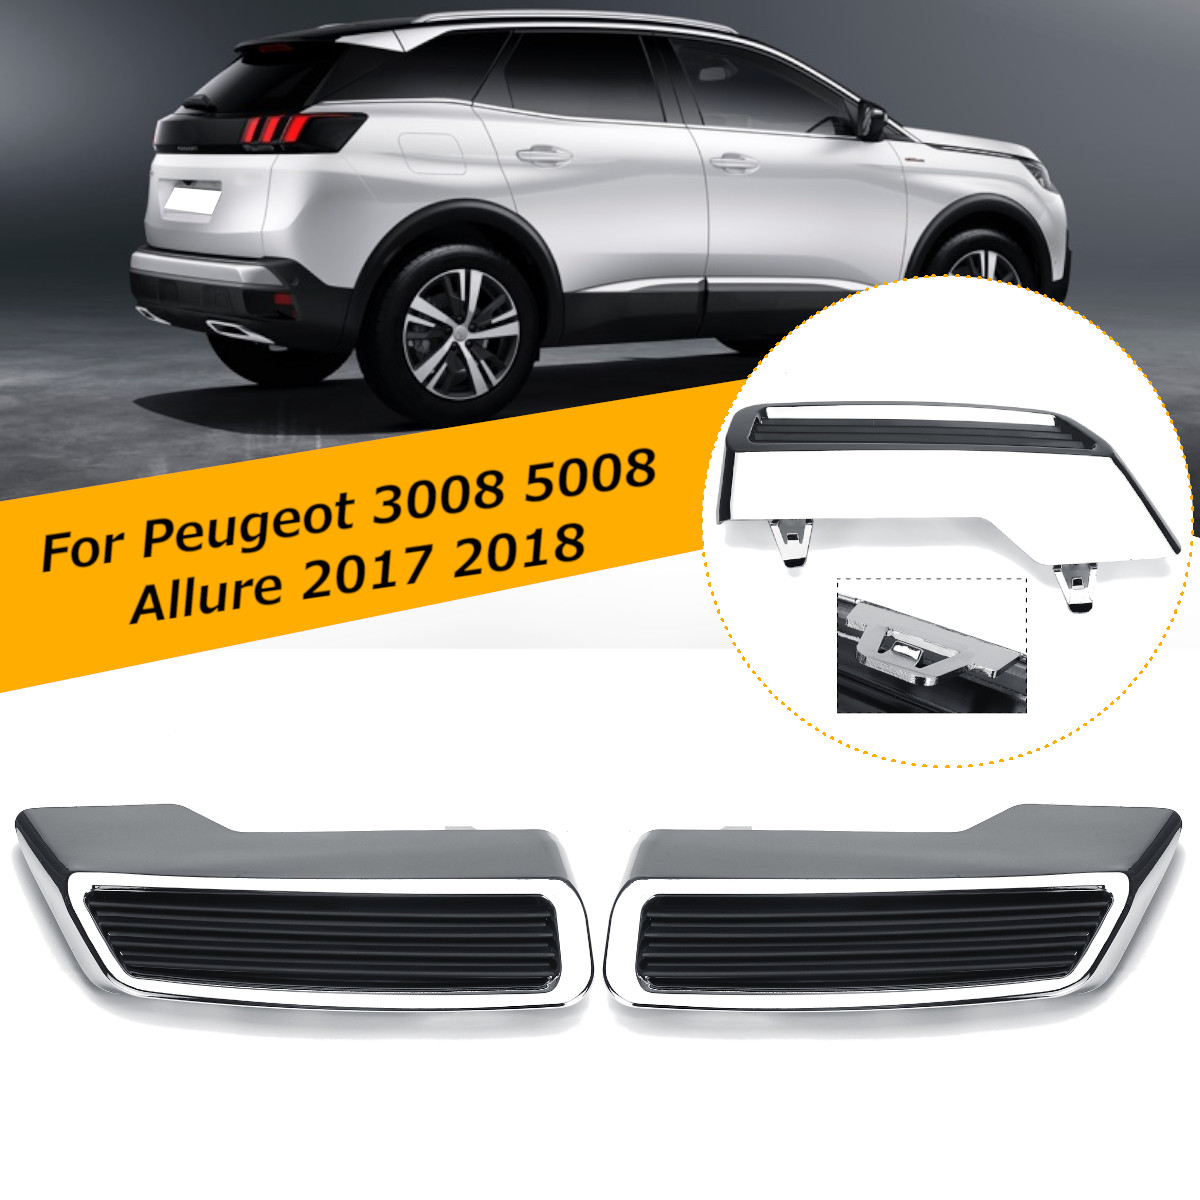 2Pcs Car Tail End Pipe Exhaust Muffler Cover Trim For Peugeot 3008 5008 For Allure 2017